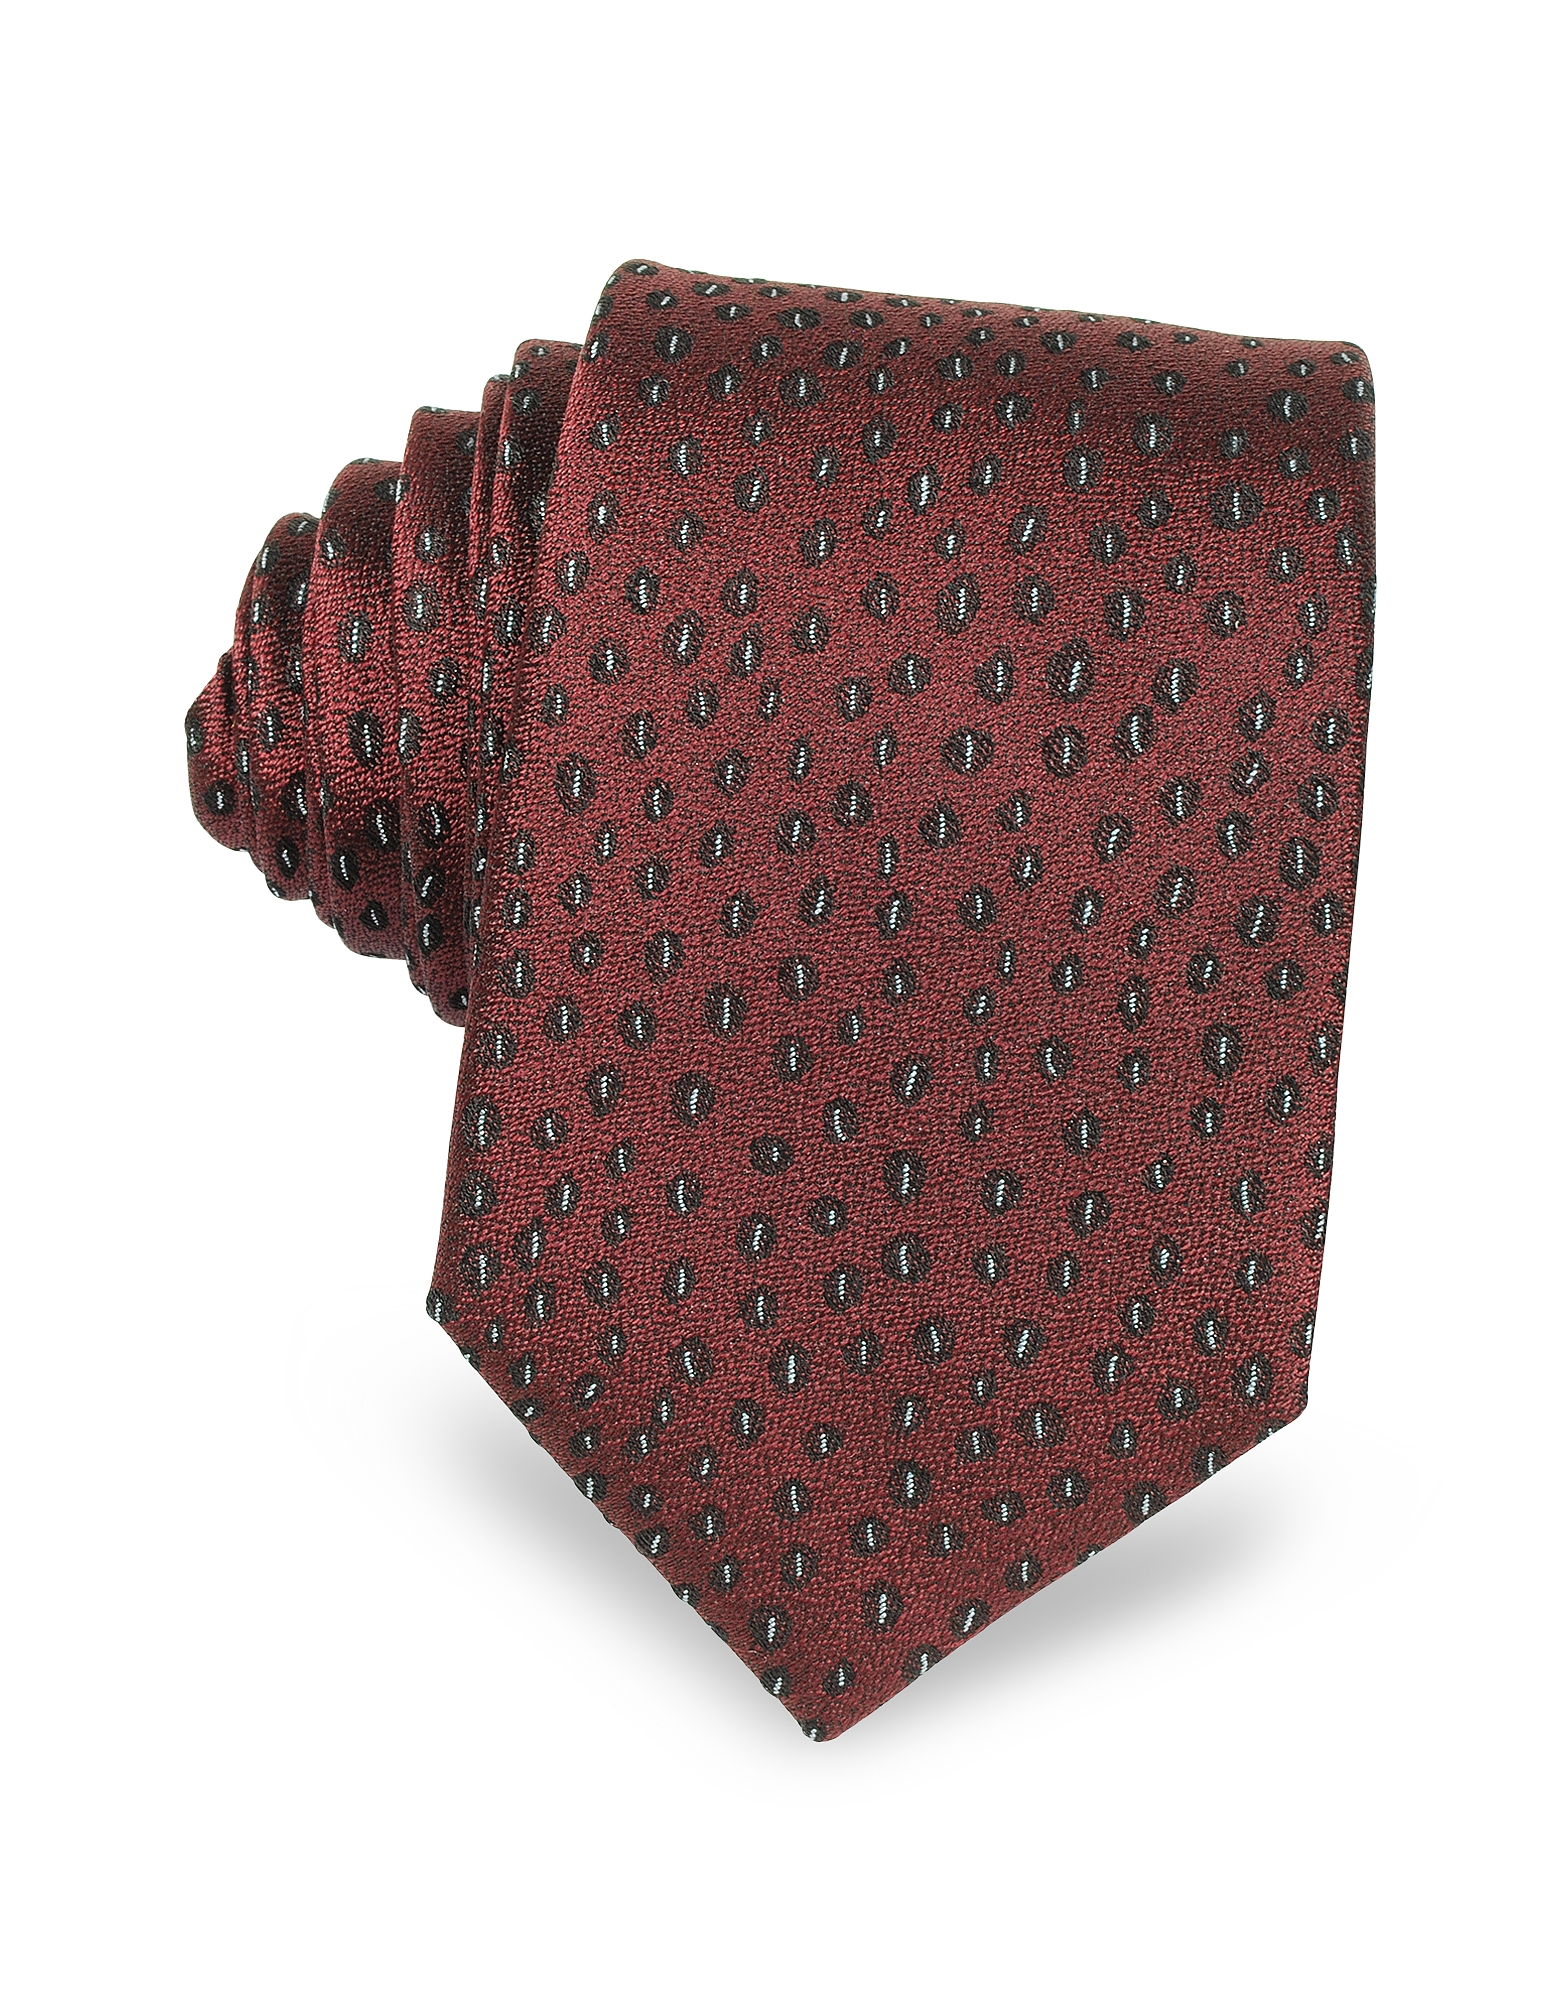 Lanvin Ties, Abstract Woven Twill Silk Narrow Tie